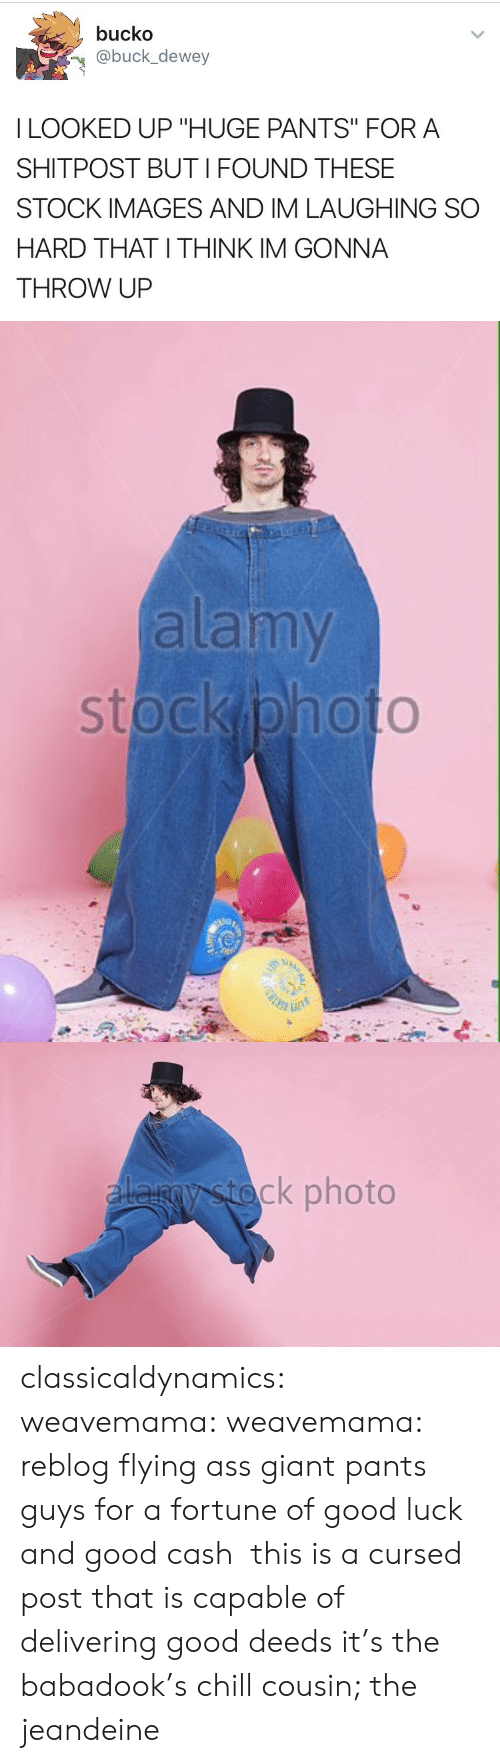 """good deeds: bucko  @buck_dewey  I LOOKED UP """"HUGE PANTS"""" FORA  SHITPOST BUTI FOUND THESE  STOCK IMAGES AND IM LAUGHING SO  HARD THAT I THINK IM GONNA  THROW UP   alamy   ck photo classicaldynamics: weavemama:  weavemama:  reblog flying ass giant pants guys for a fortune of good luck and good cash  this is a cursed post that is capable of delivering good deeds  it's the babadook's chill cousin; the jeandeine"""